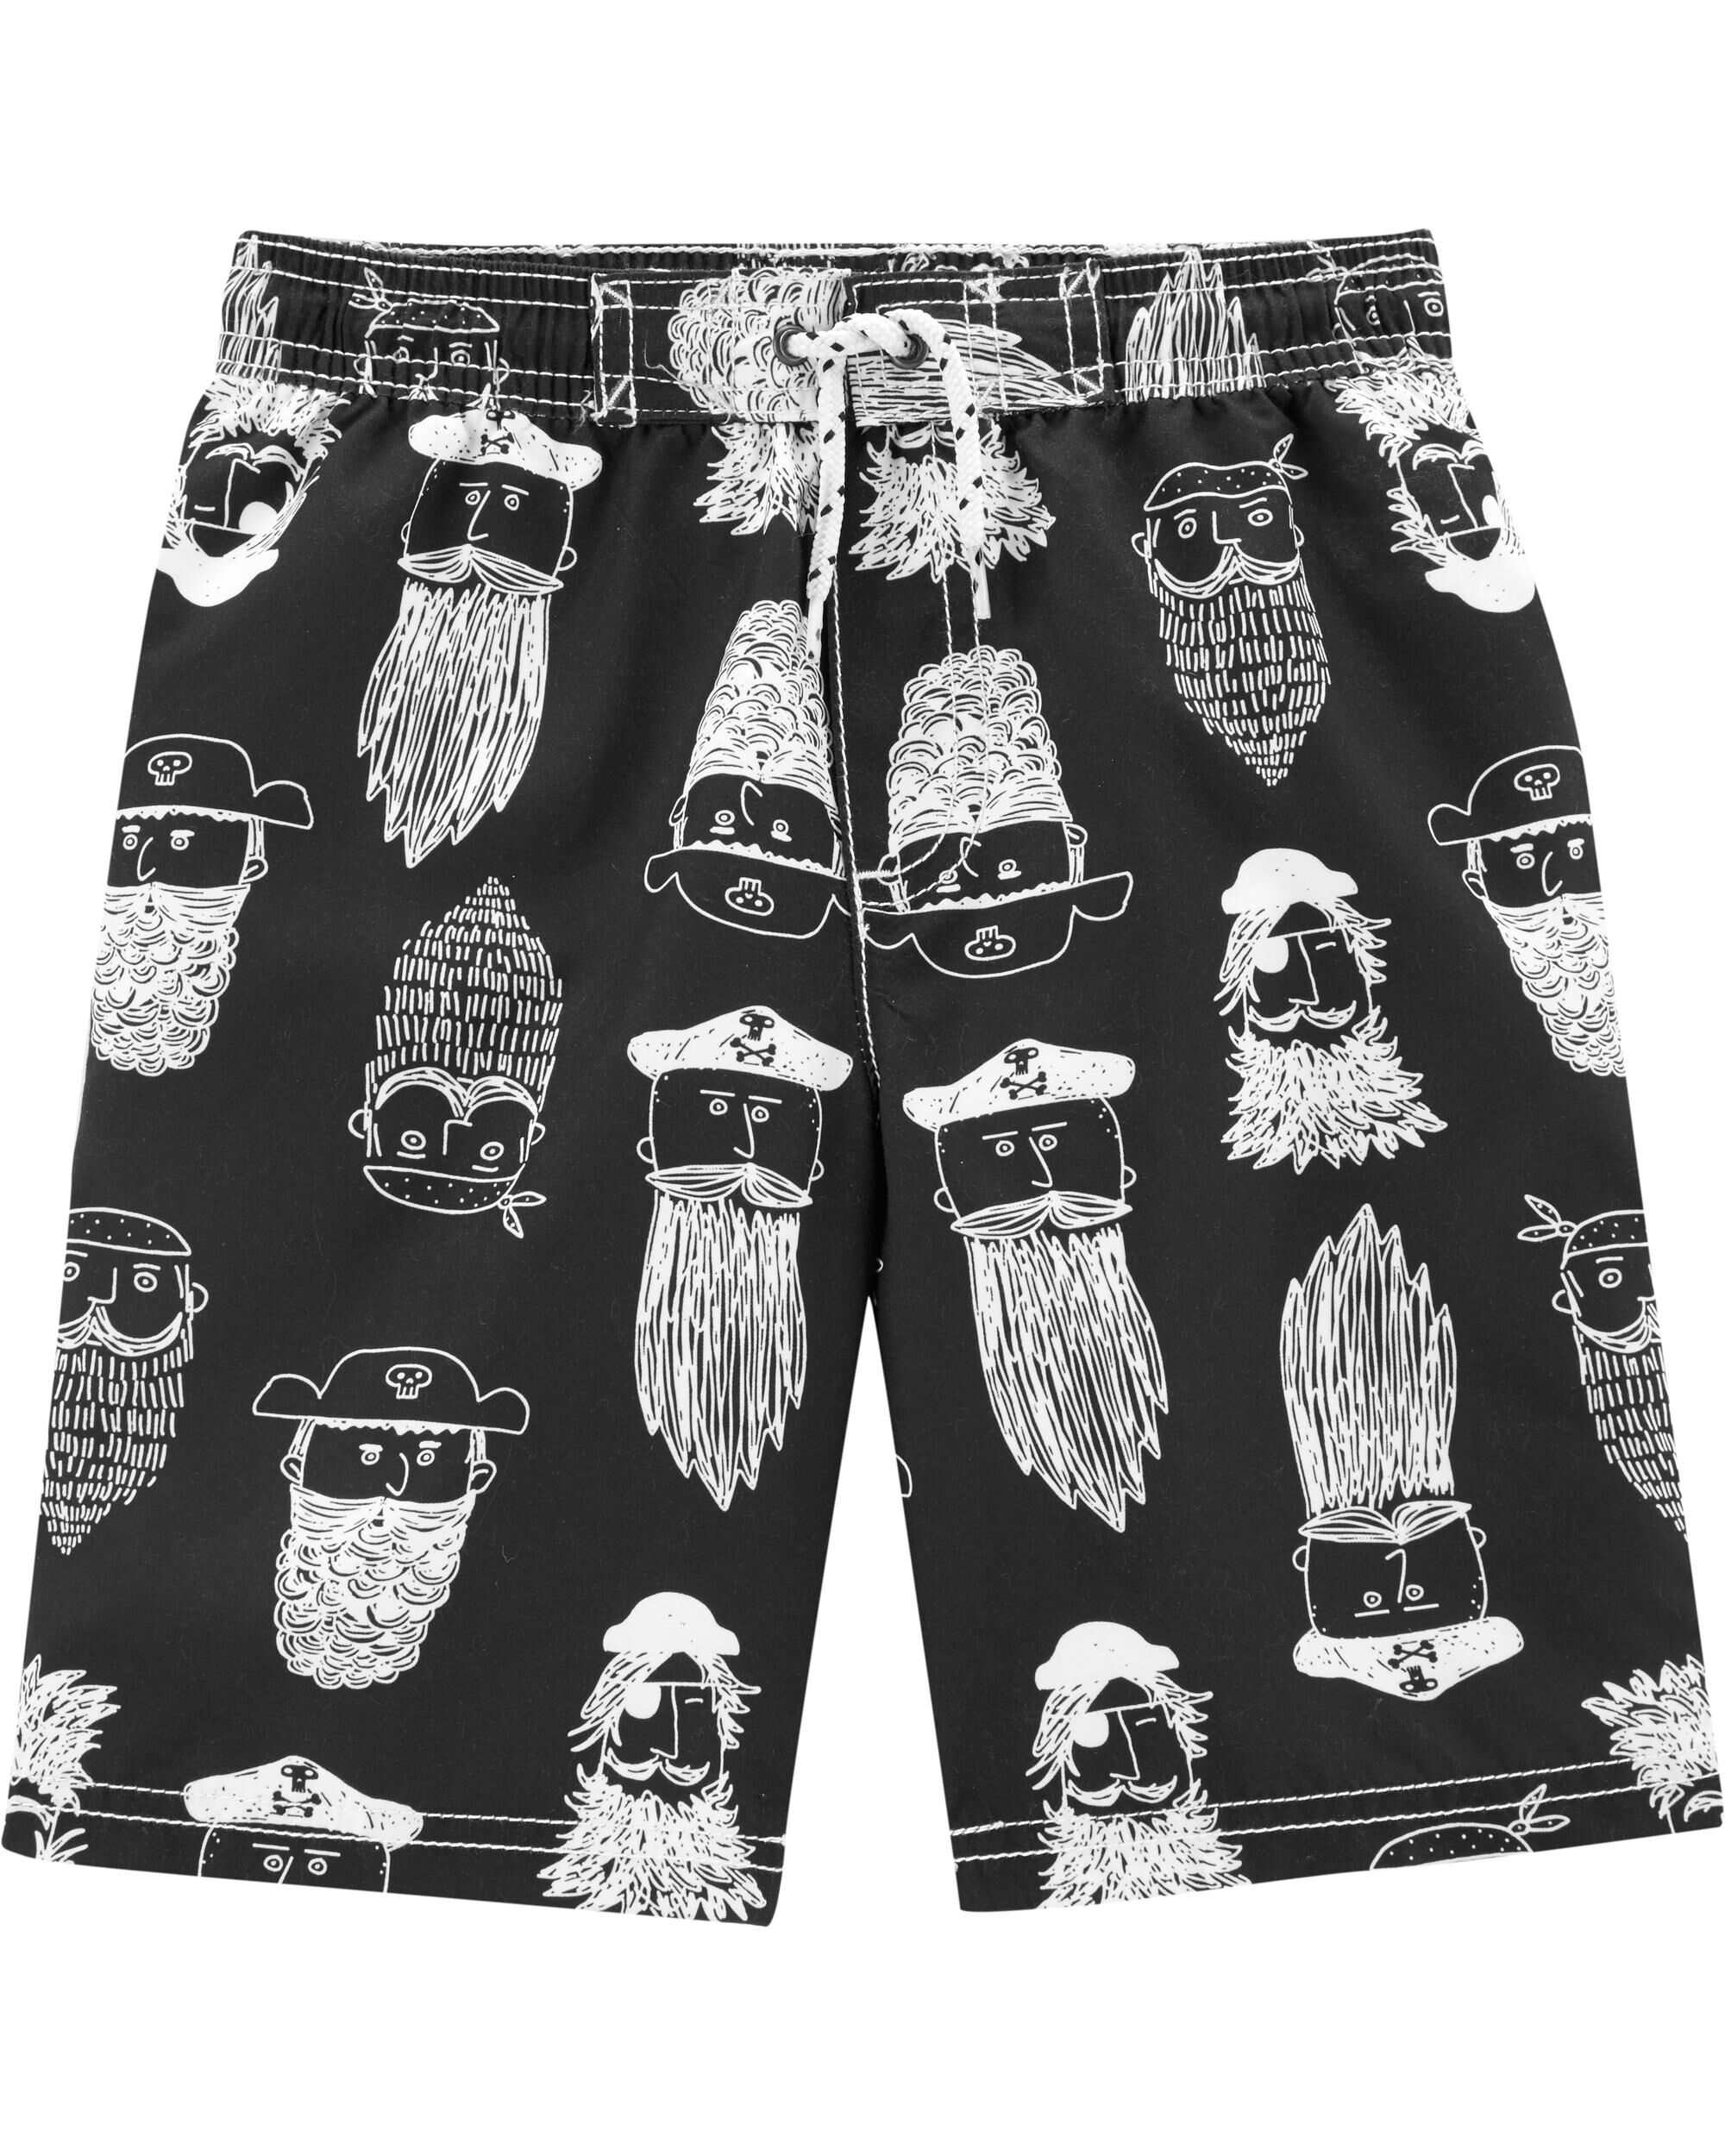 *Clearance*  Carter's Pirate Swim Trunks